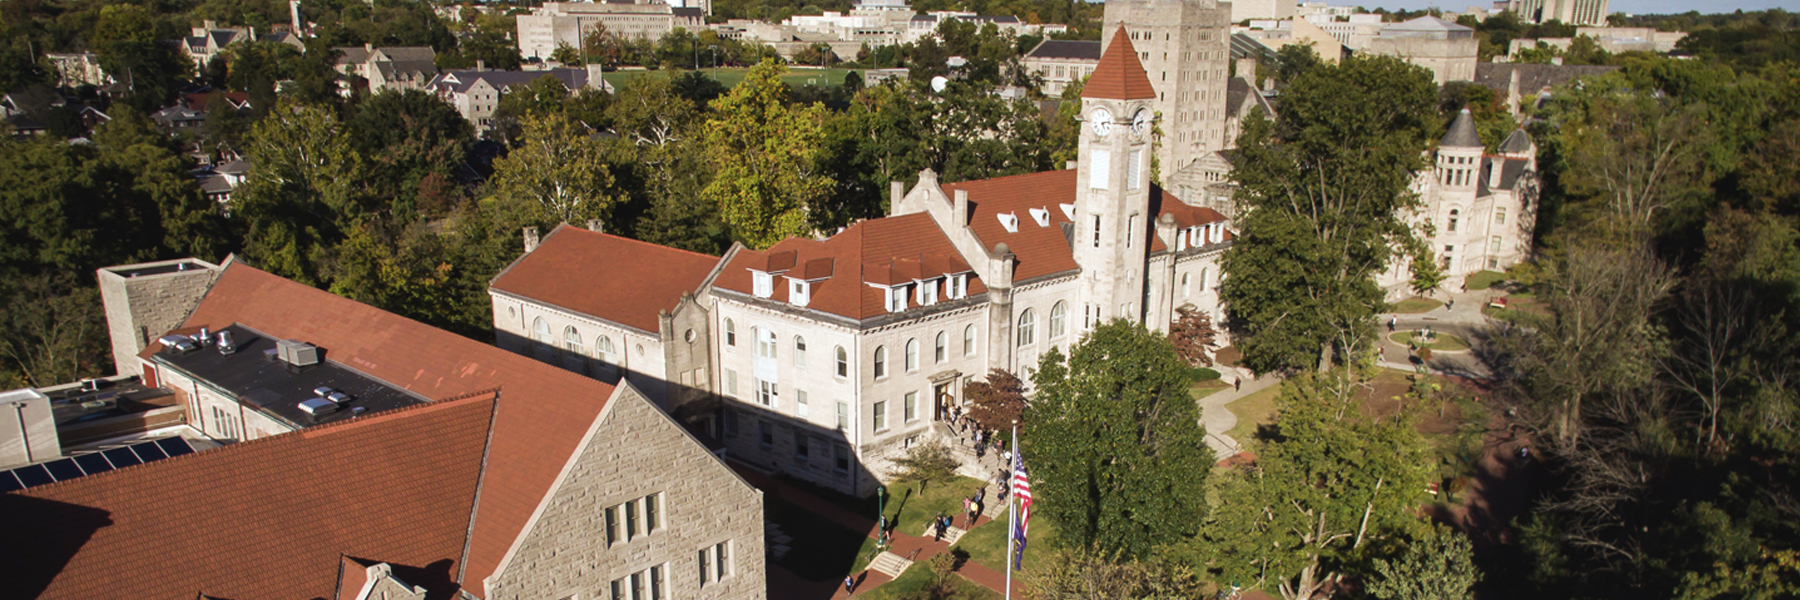 A drone's view of the Student Building, home to the IU Office of NAGPRA.